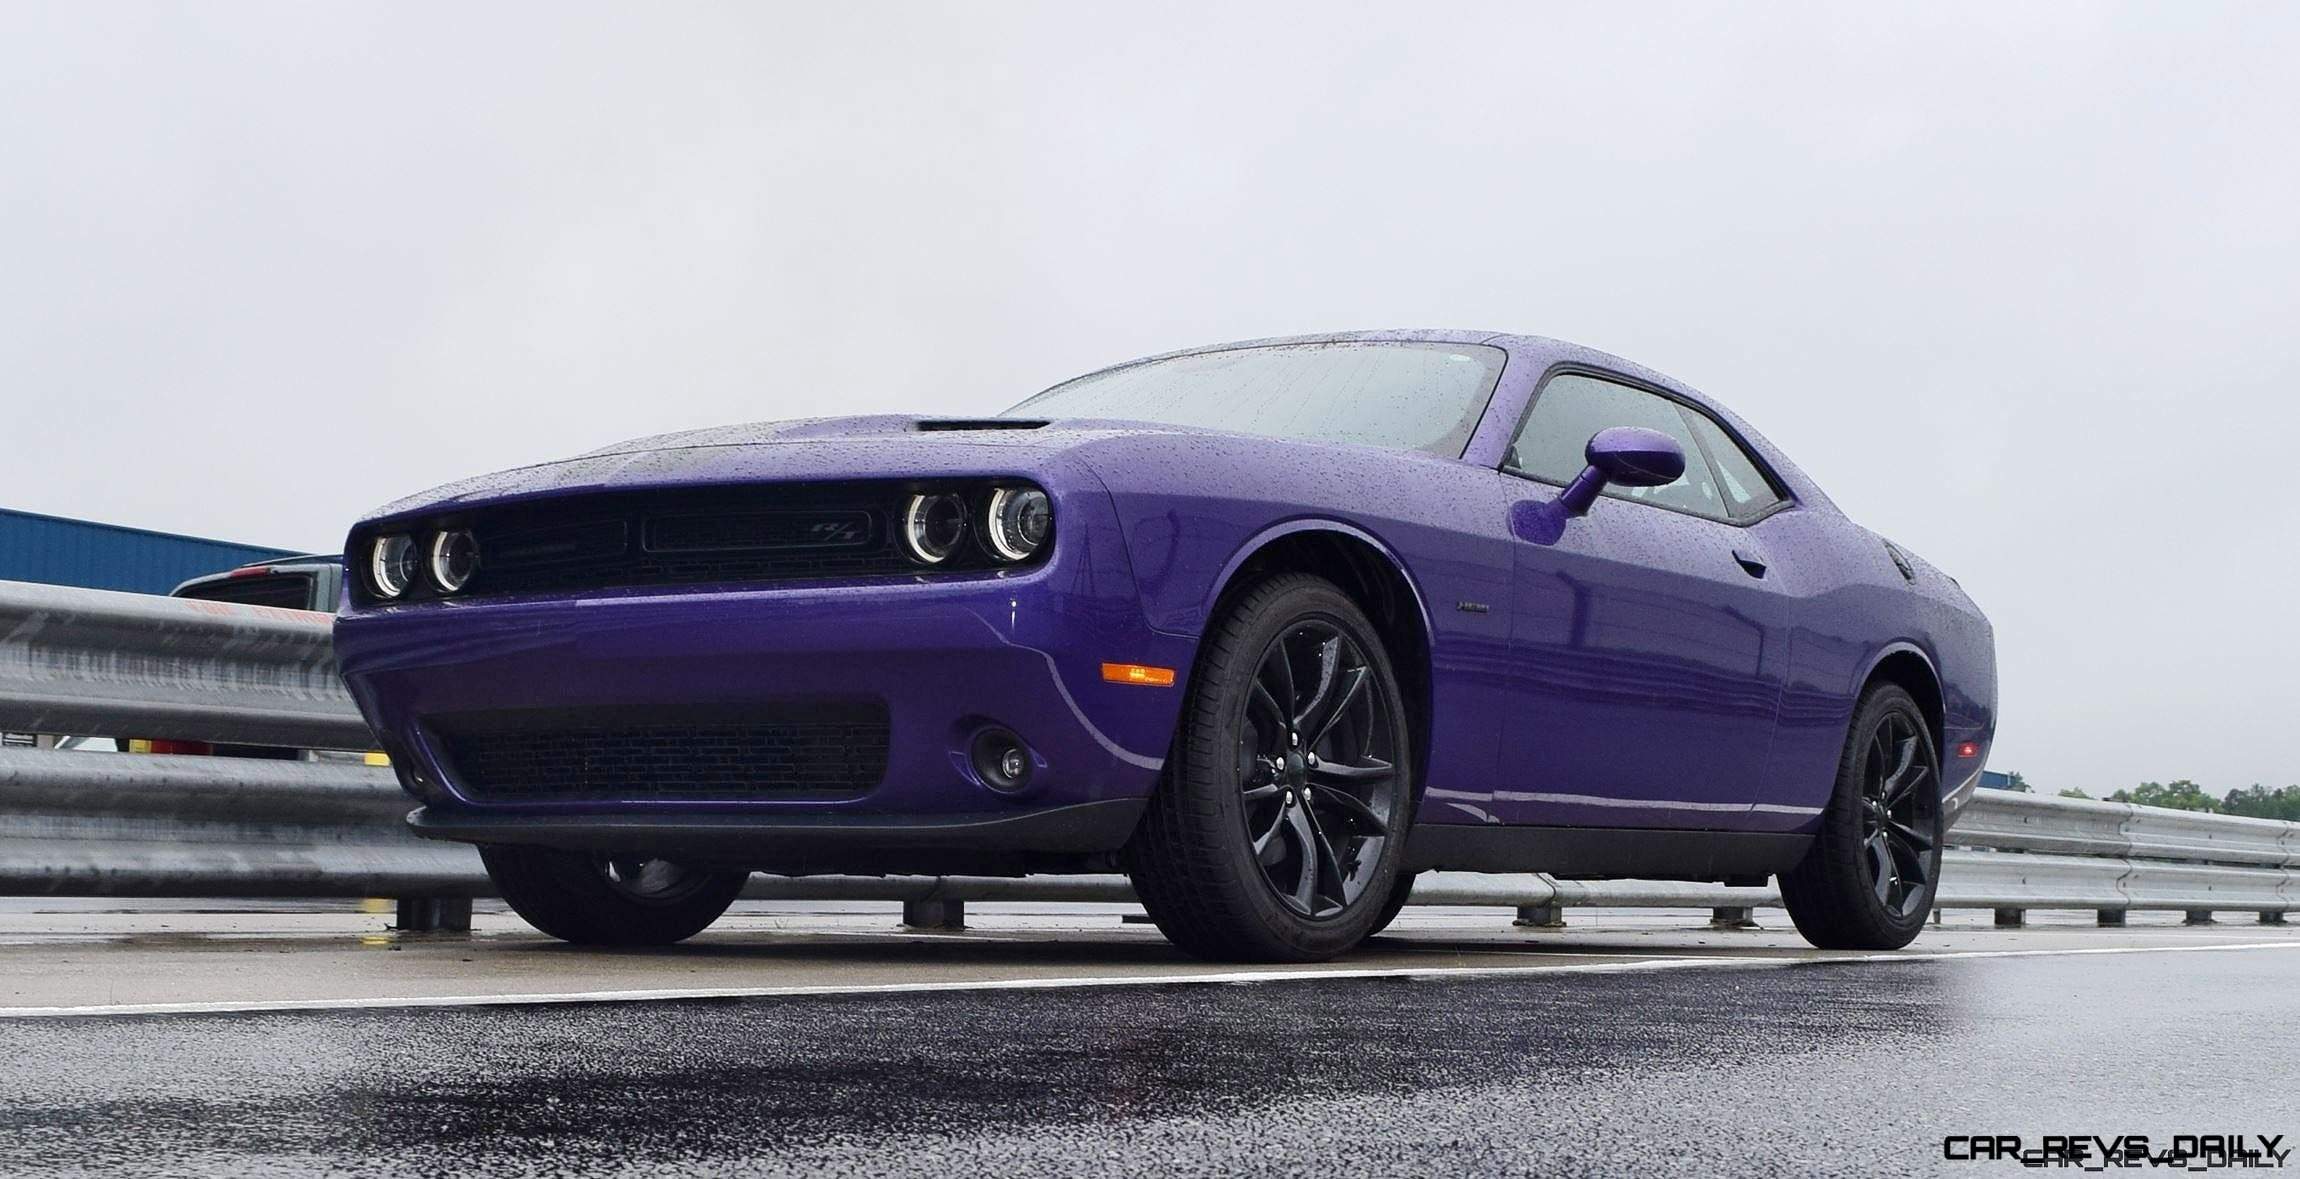 2016 Dodge Challenger RT Plum Crazy 18